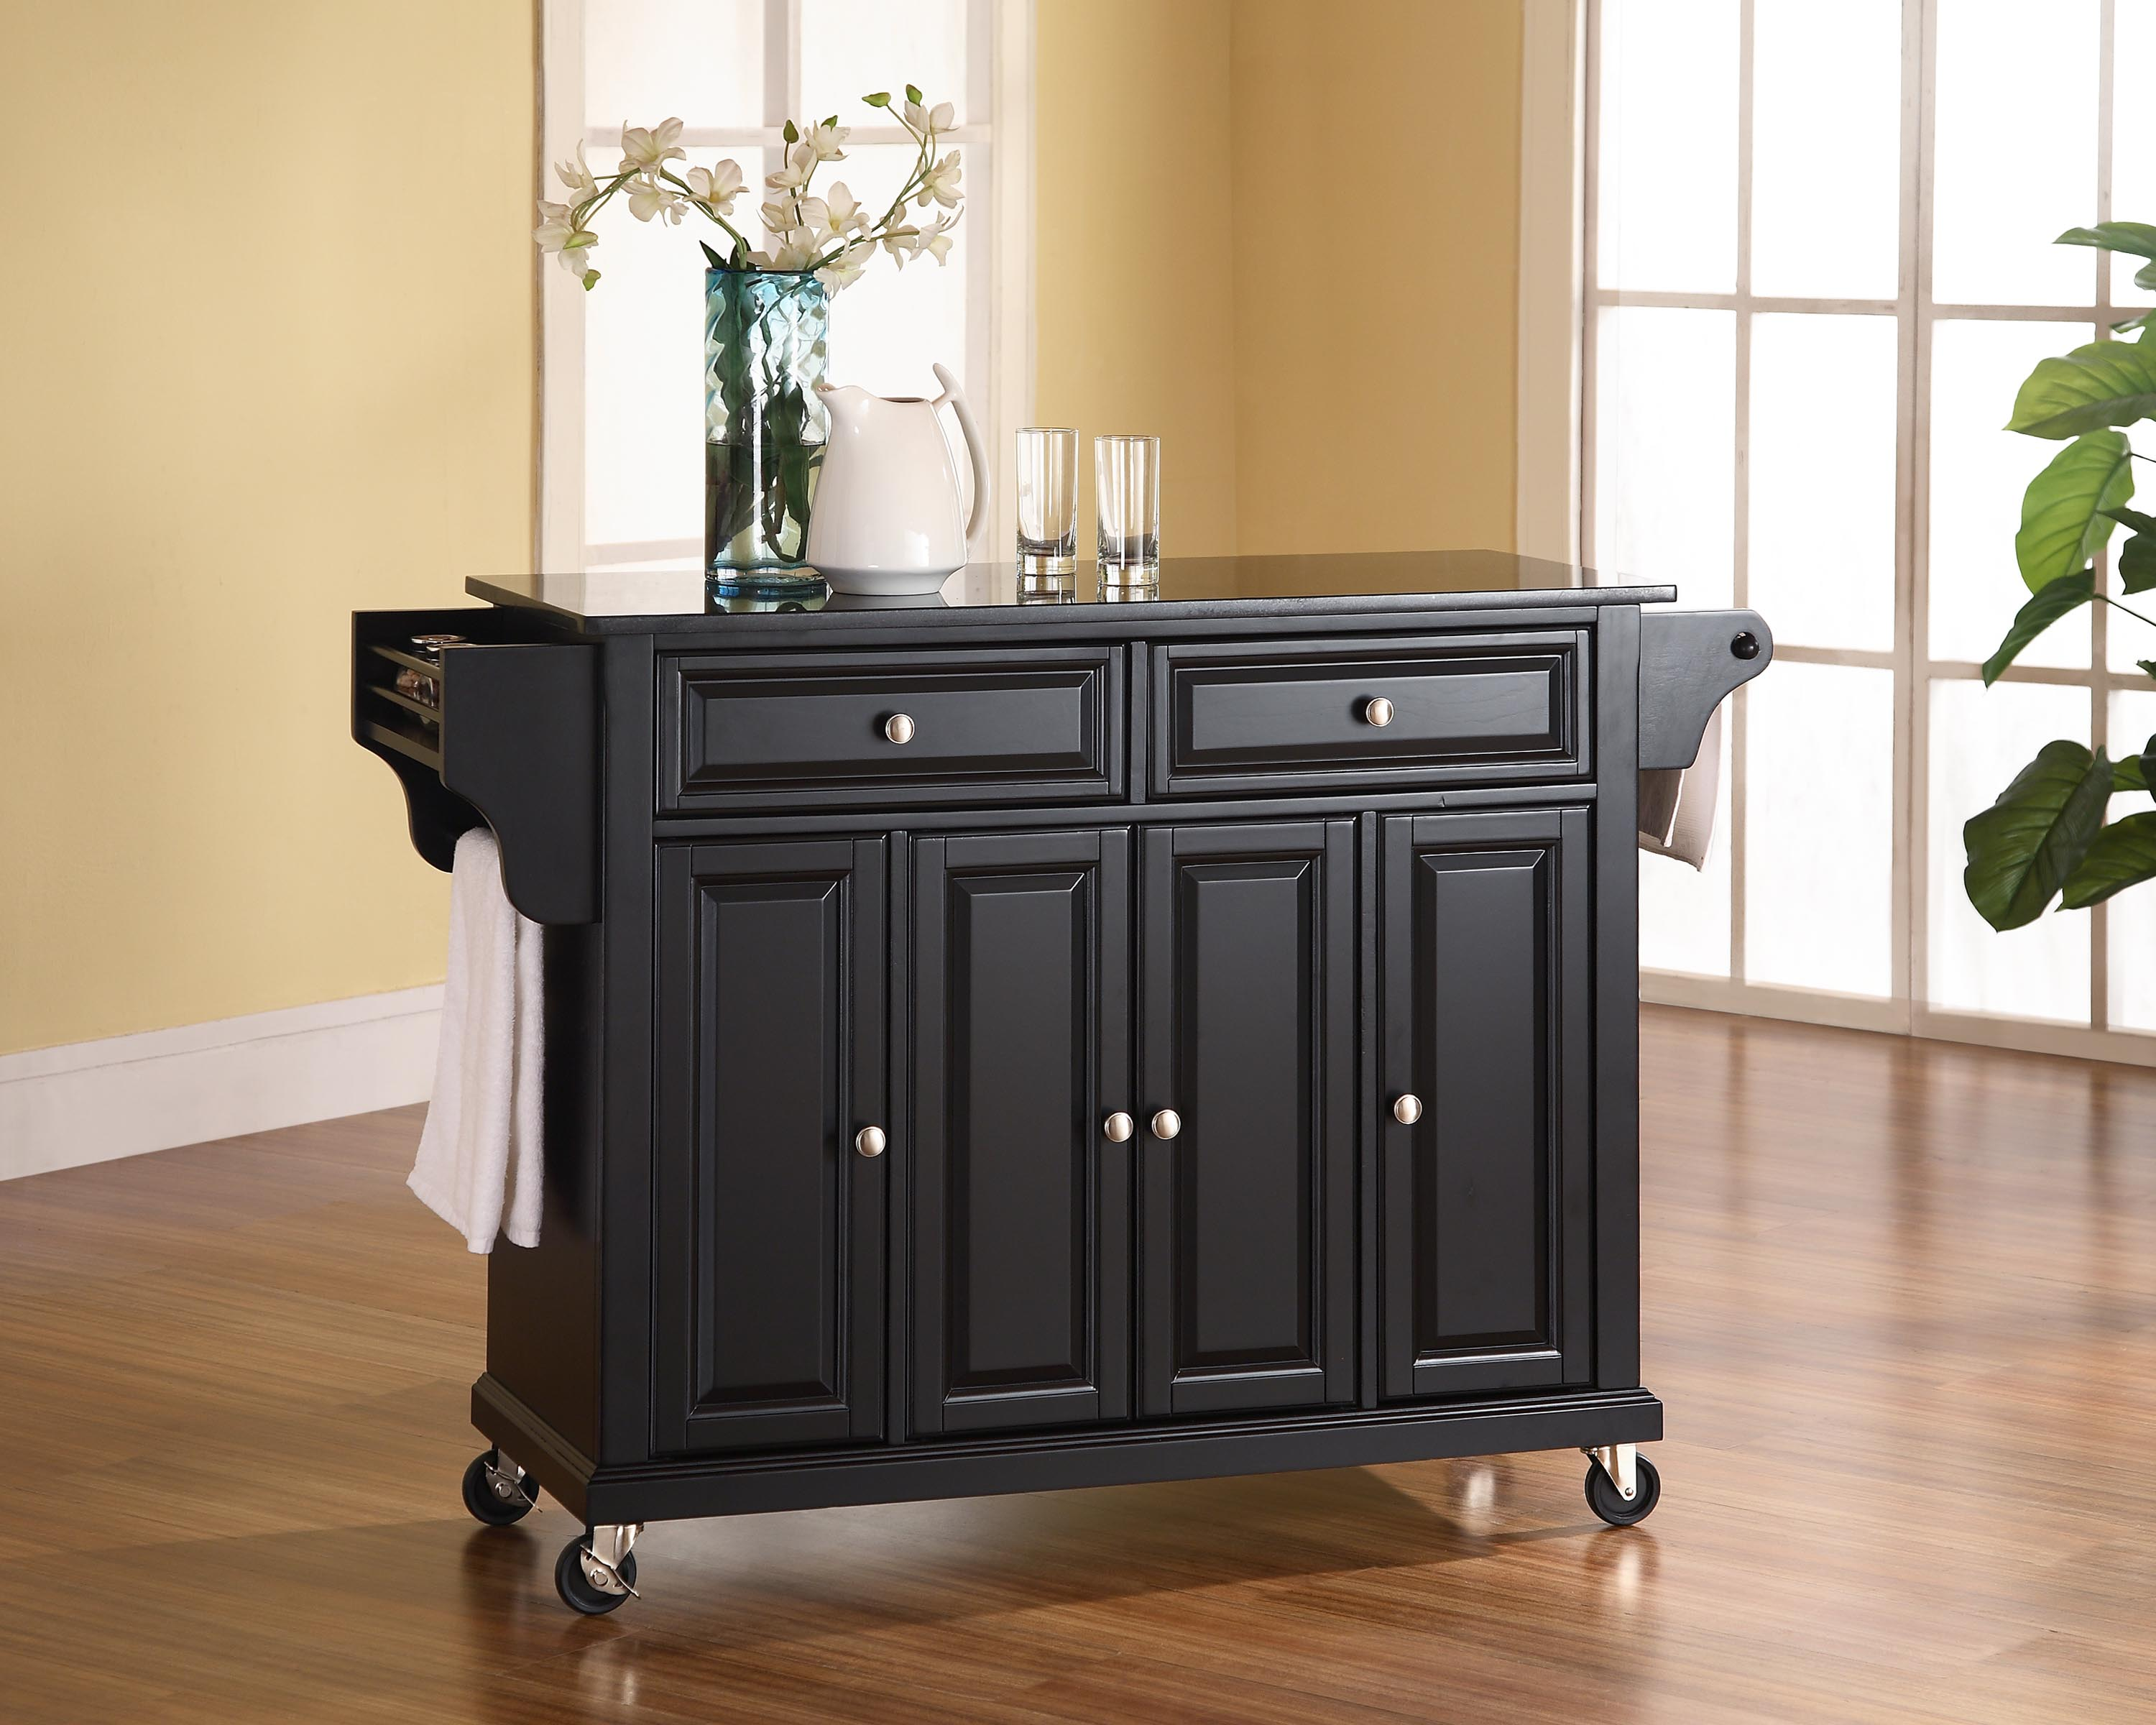 kitchen islands on casters kitchen island on casters homesfeed 3988